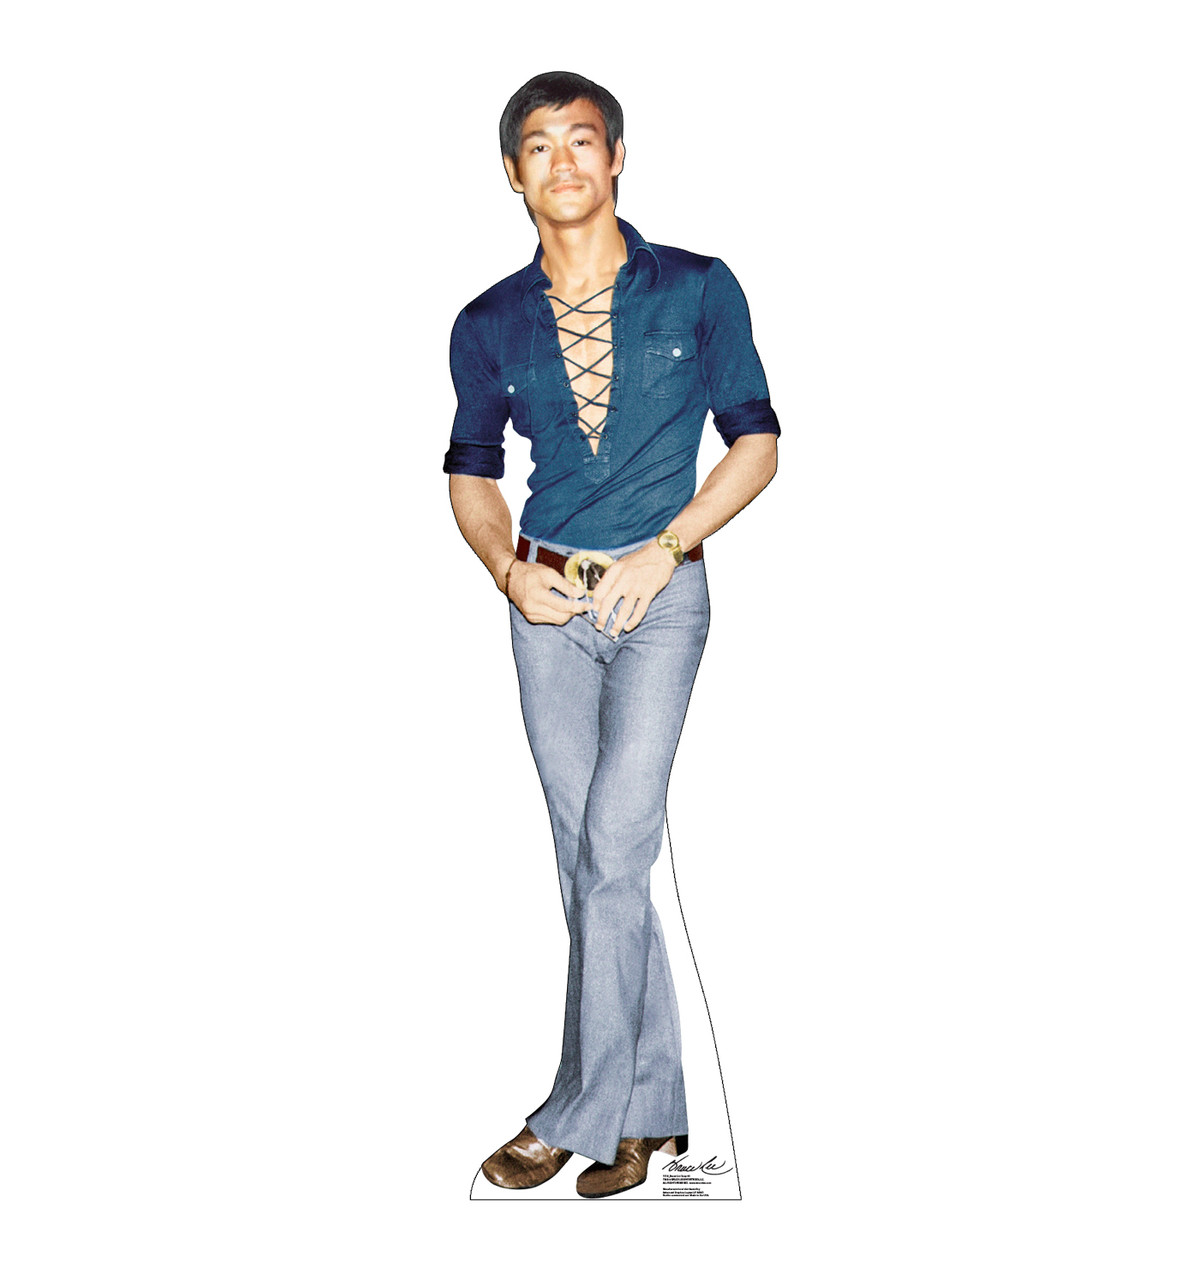 Bruce Lee Snap 66 - Cardboard Cutout 1514